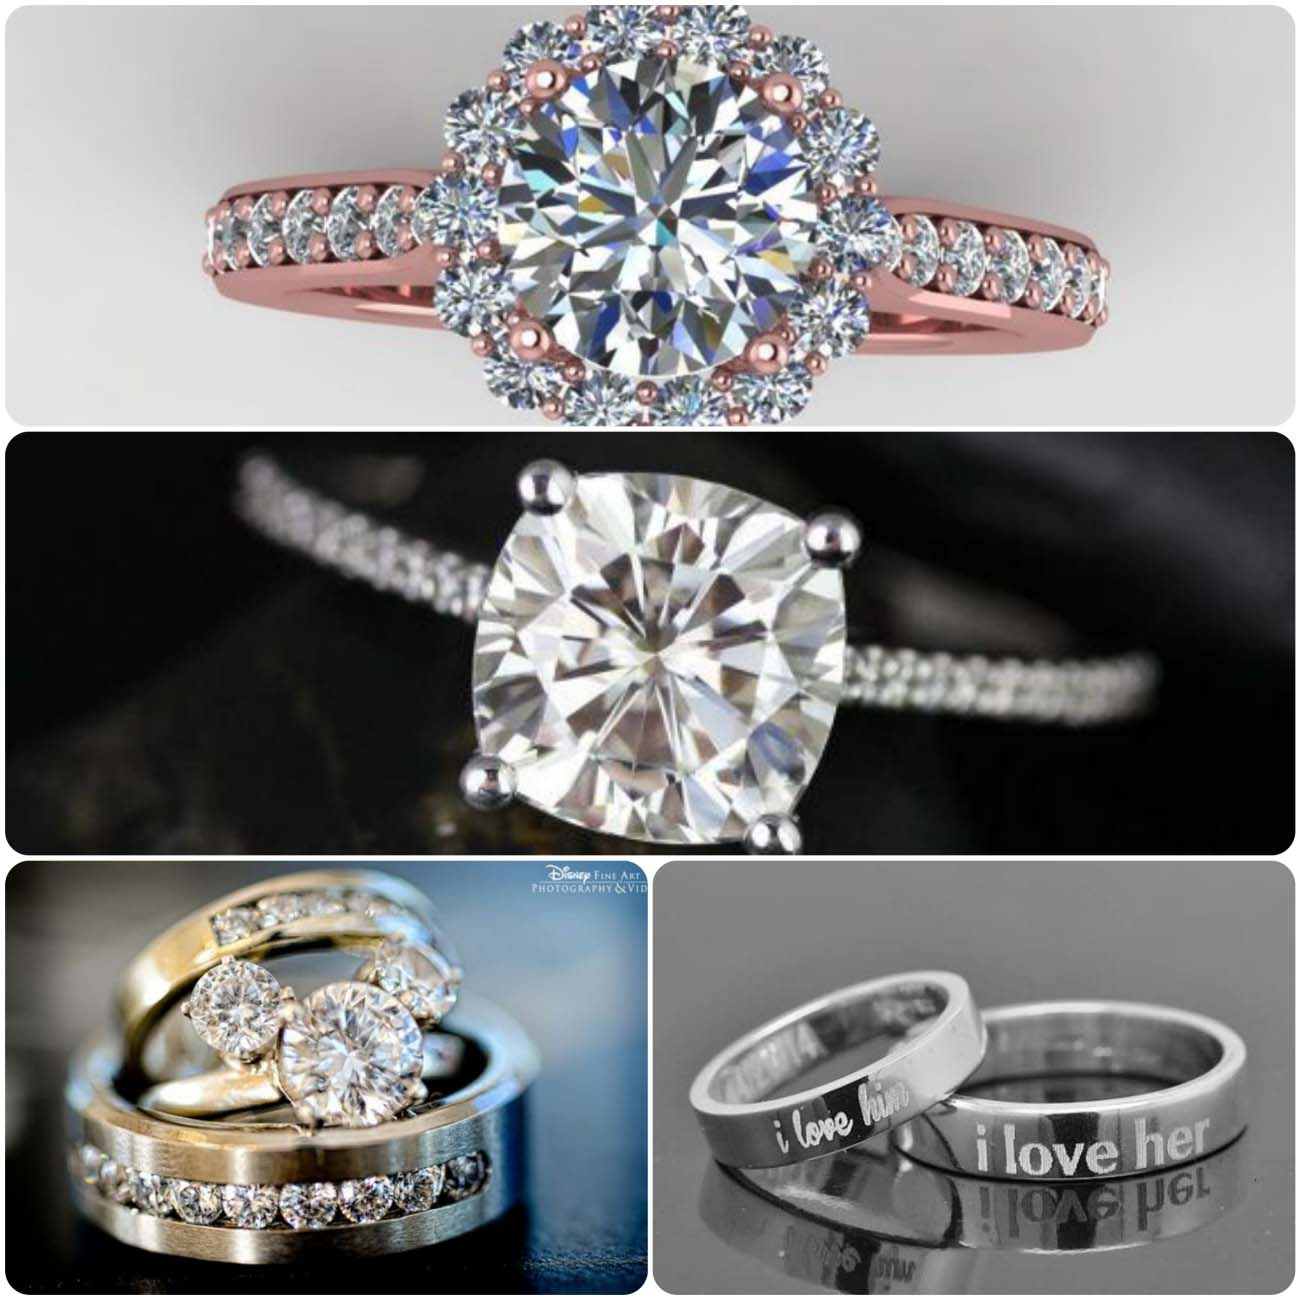 Engagement Rings Design For Men & Women 2016 | Stylo Planet